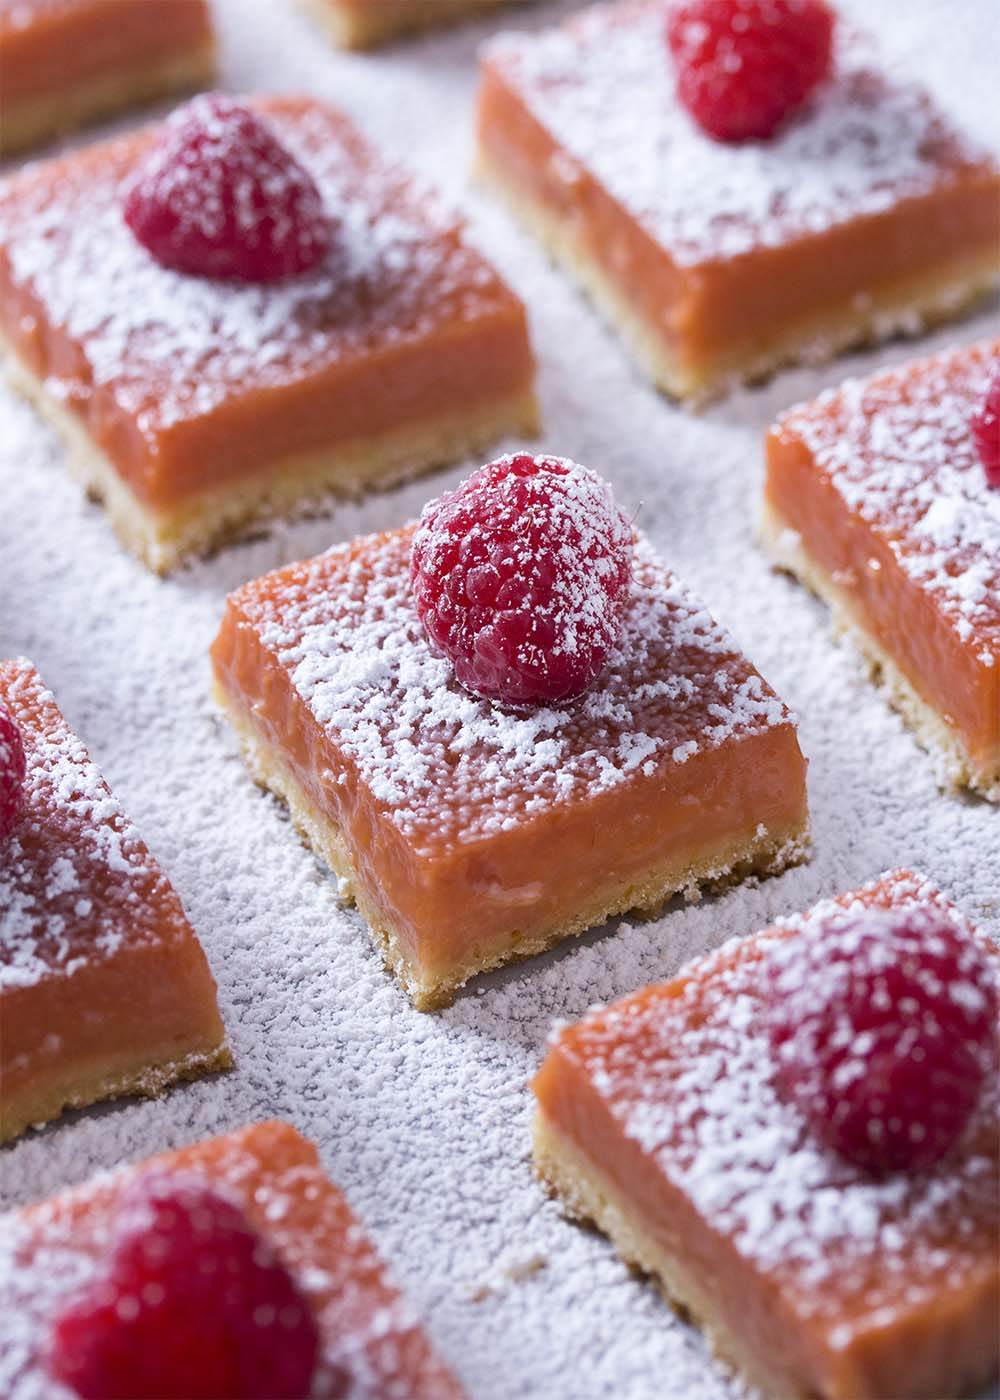 Orangey-red lemon raspberry squares have been topped with a fresh raspberry and dusted with confectioners' sugar.